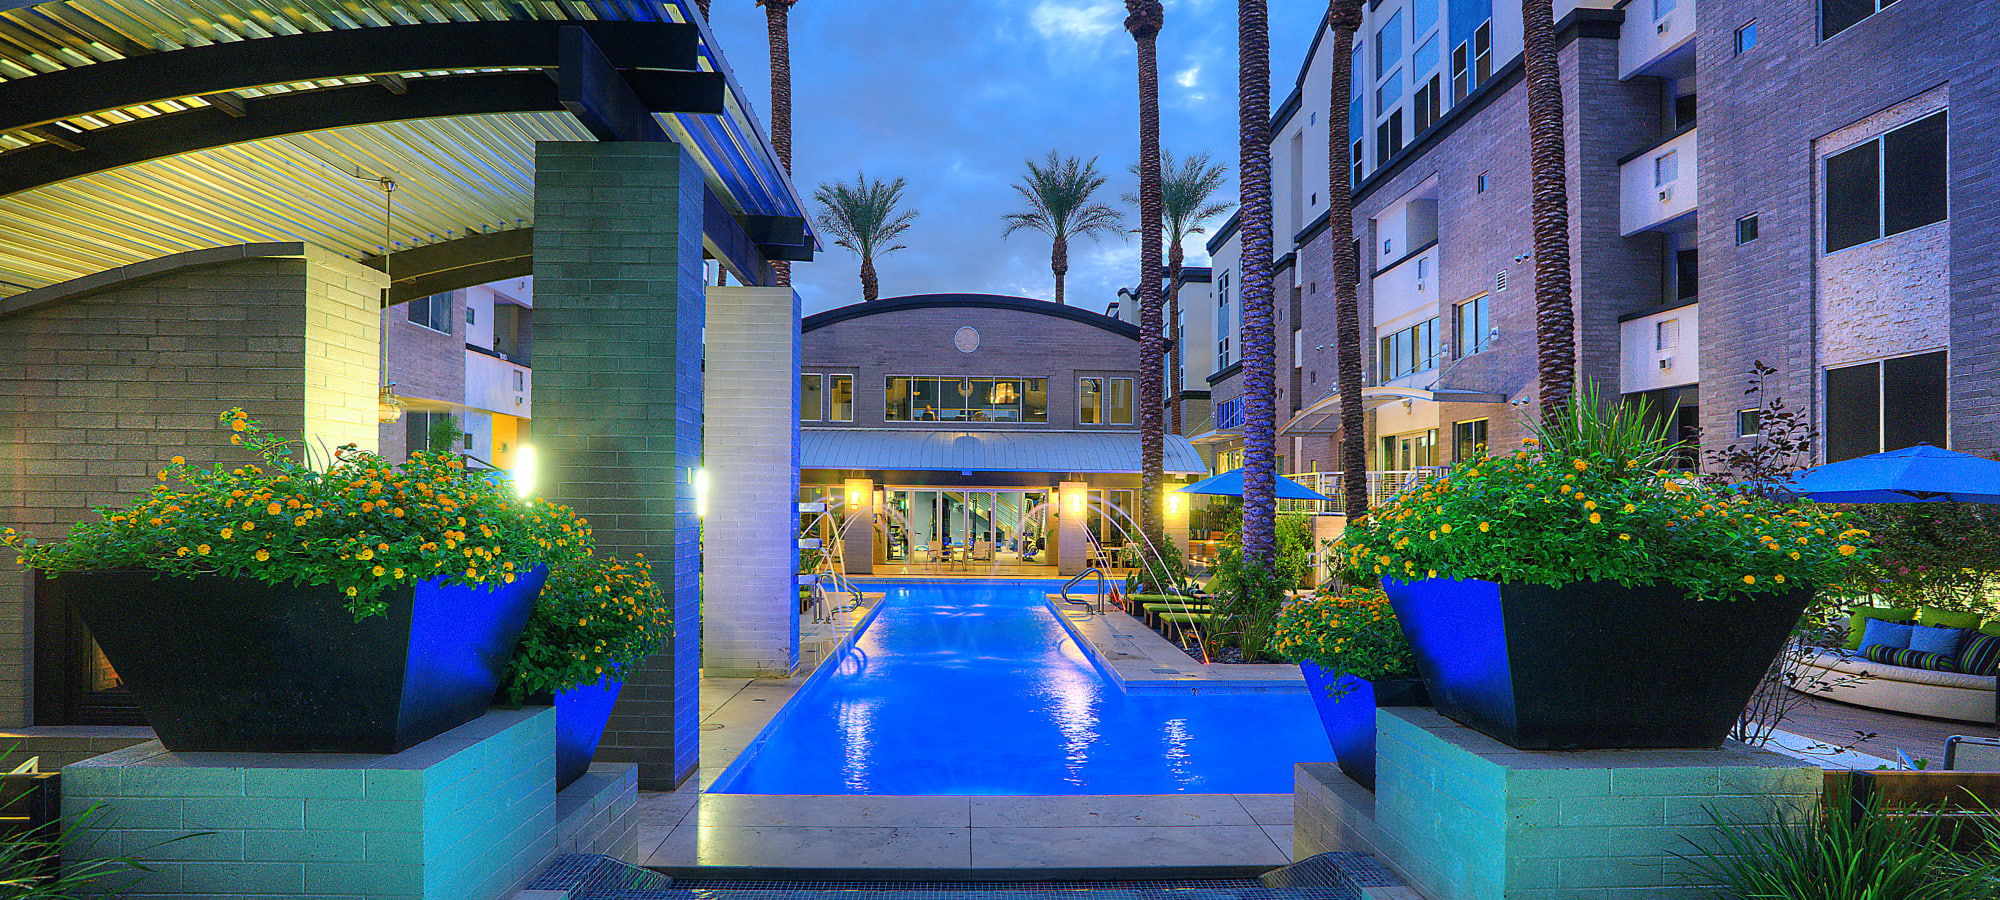 Evening view of the pool area at Level at Sixteenth in Phoenix, Arizona